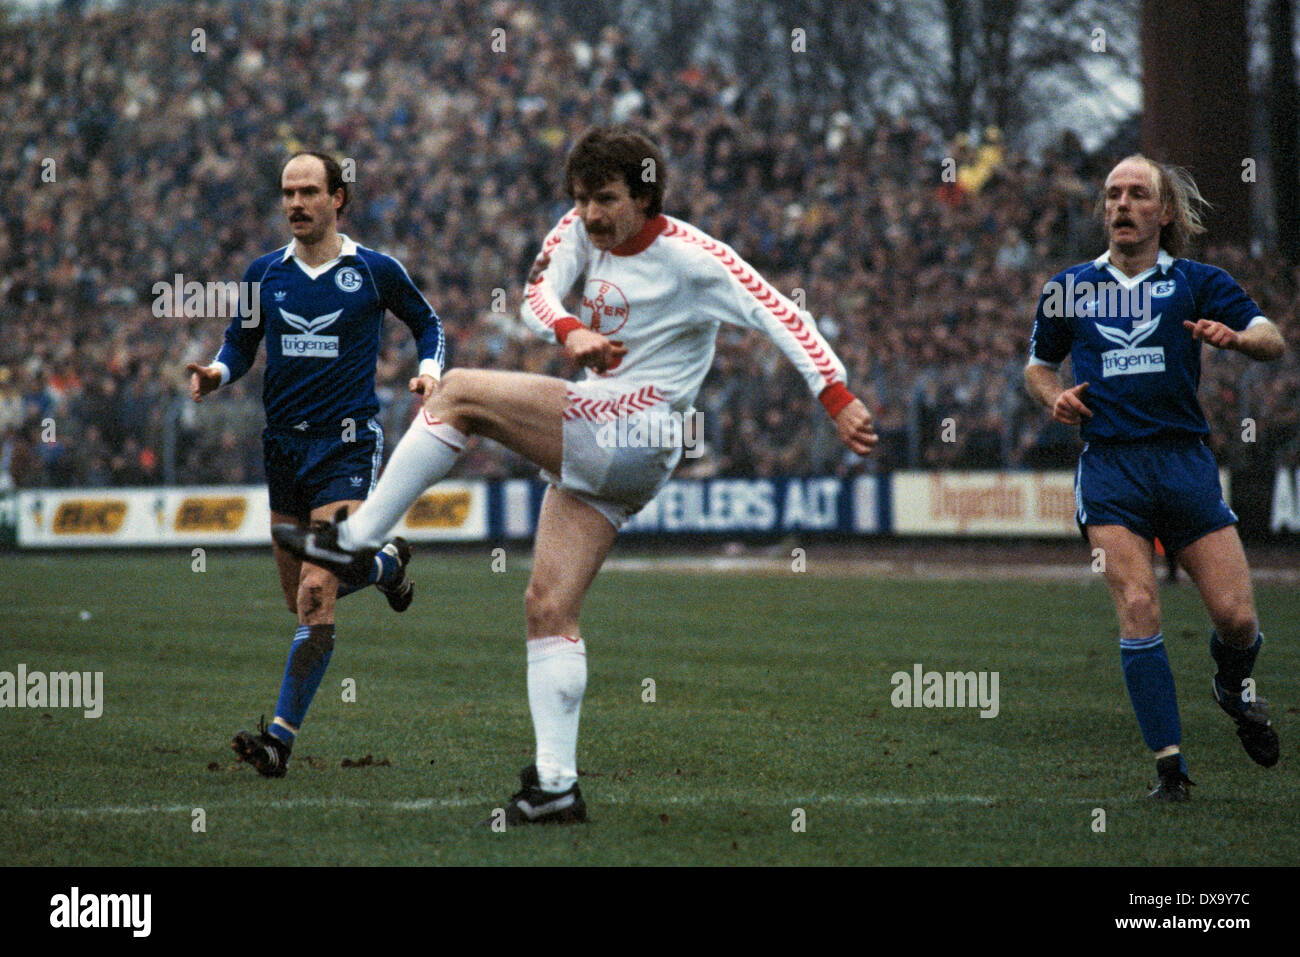 football, Bundesliga, 1980/1981, Grotenburg Stadium, FC Bayer 05 Uerdingen versus FC Schalke 04 1:3, scene of the match, shot on goal by Herbert Zimmer (Bayer), left Manfred Drexler (S04), right Ulrich Bittcher (S04) - Stock Image